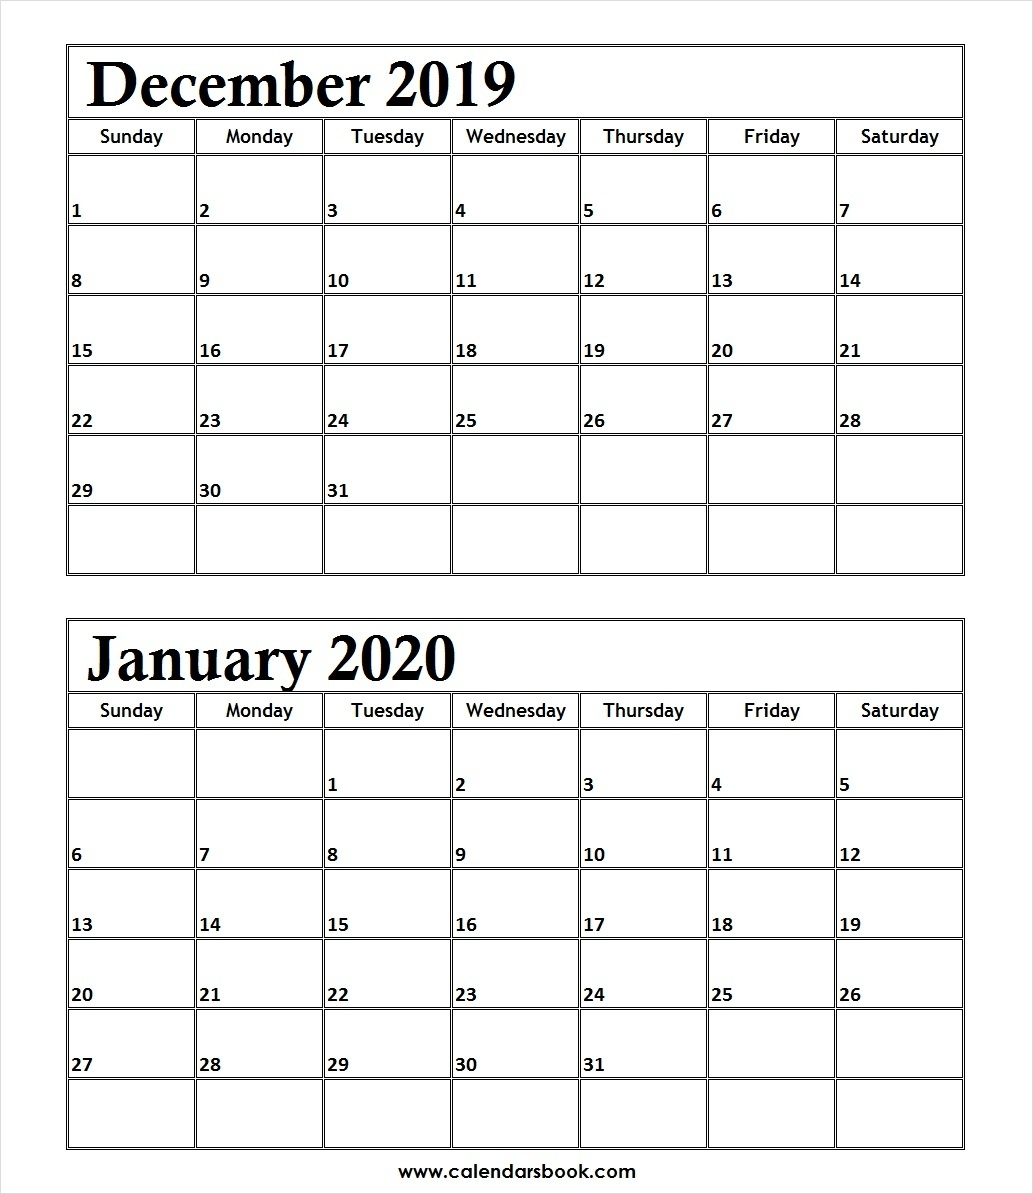 Printable Calendar December 2019 And January 2020 | Calendar